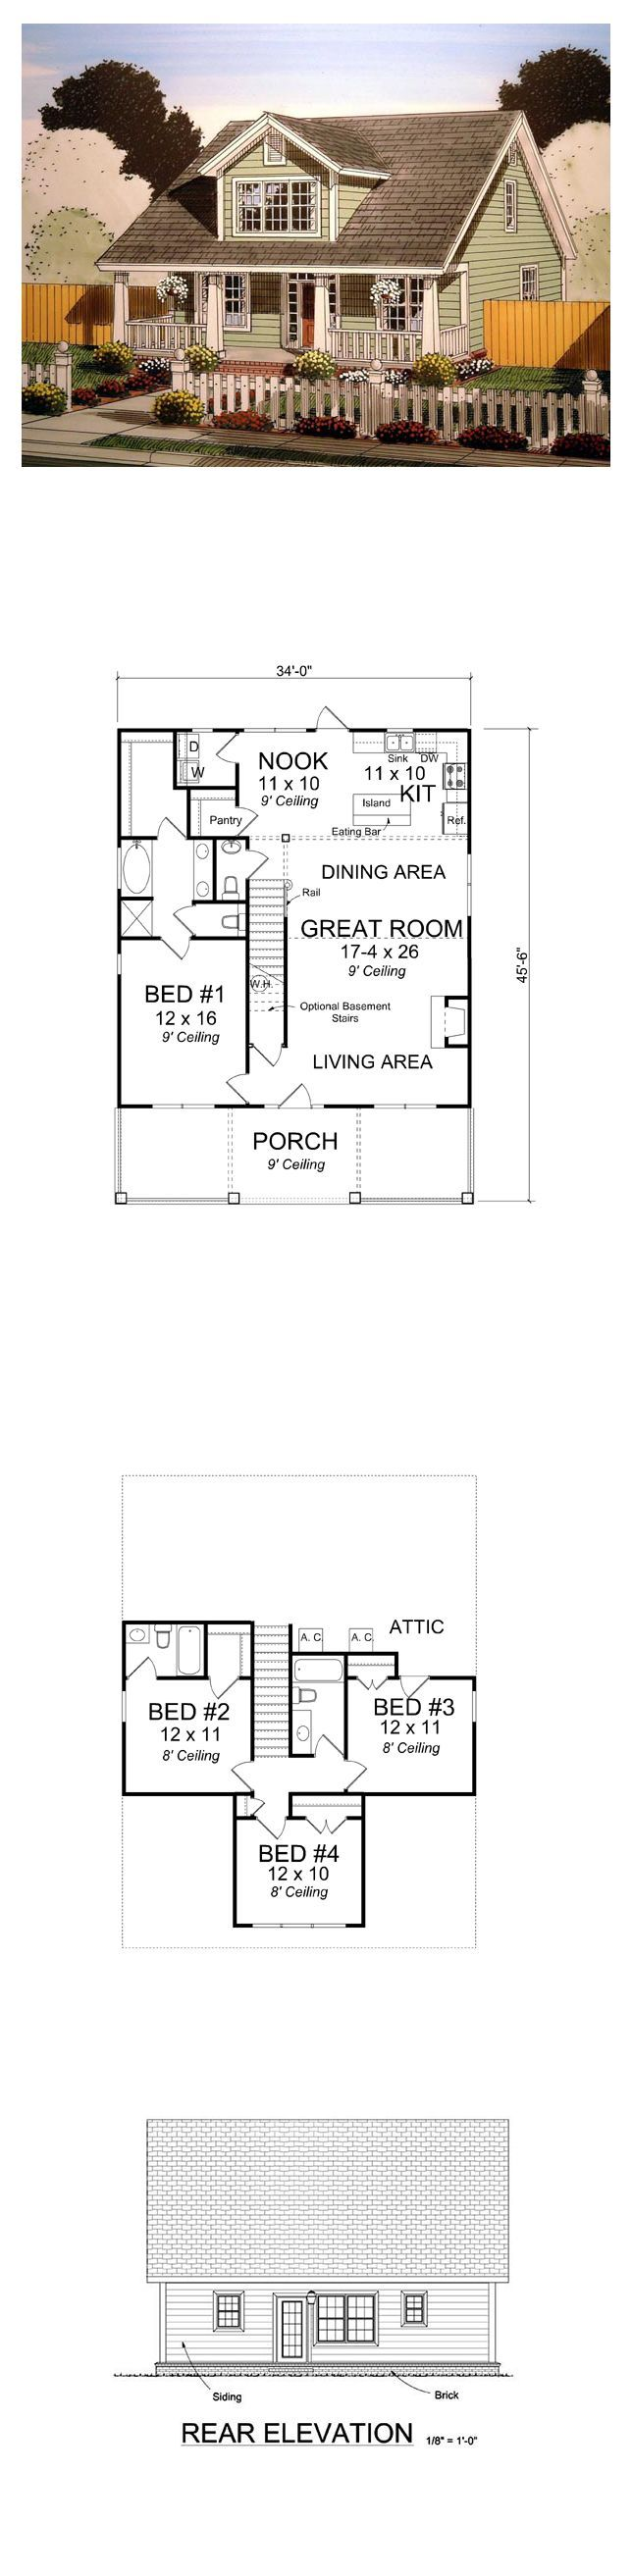 Cape cod house plan 61403 total living area 1871 sq ft for Small cape house plans